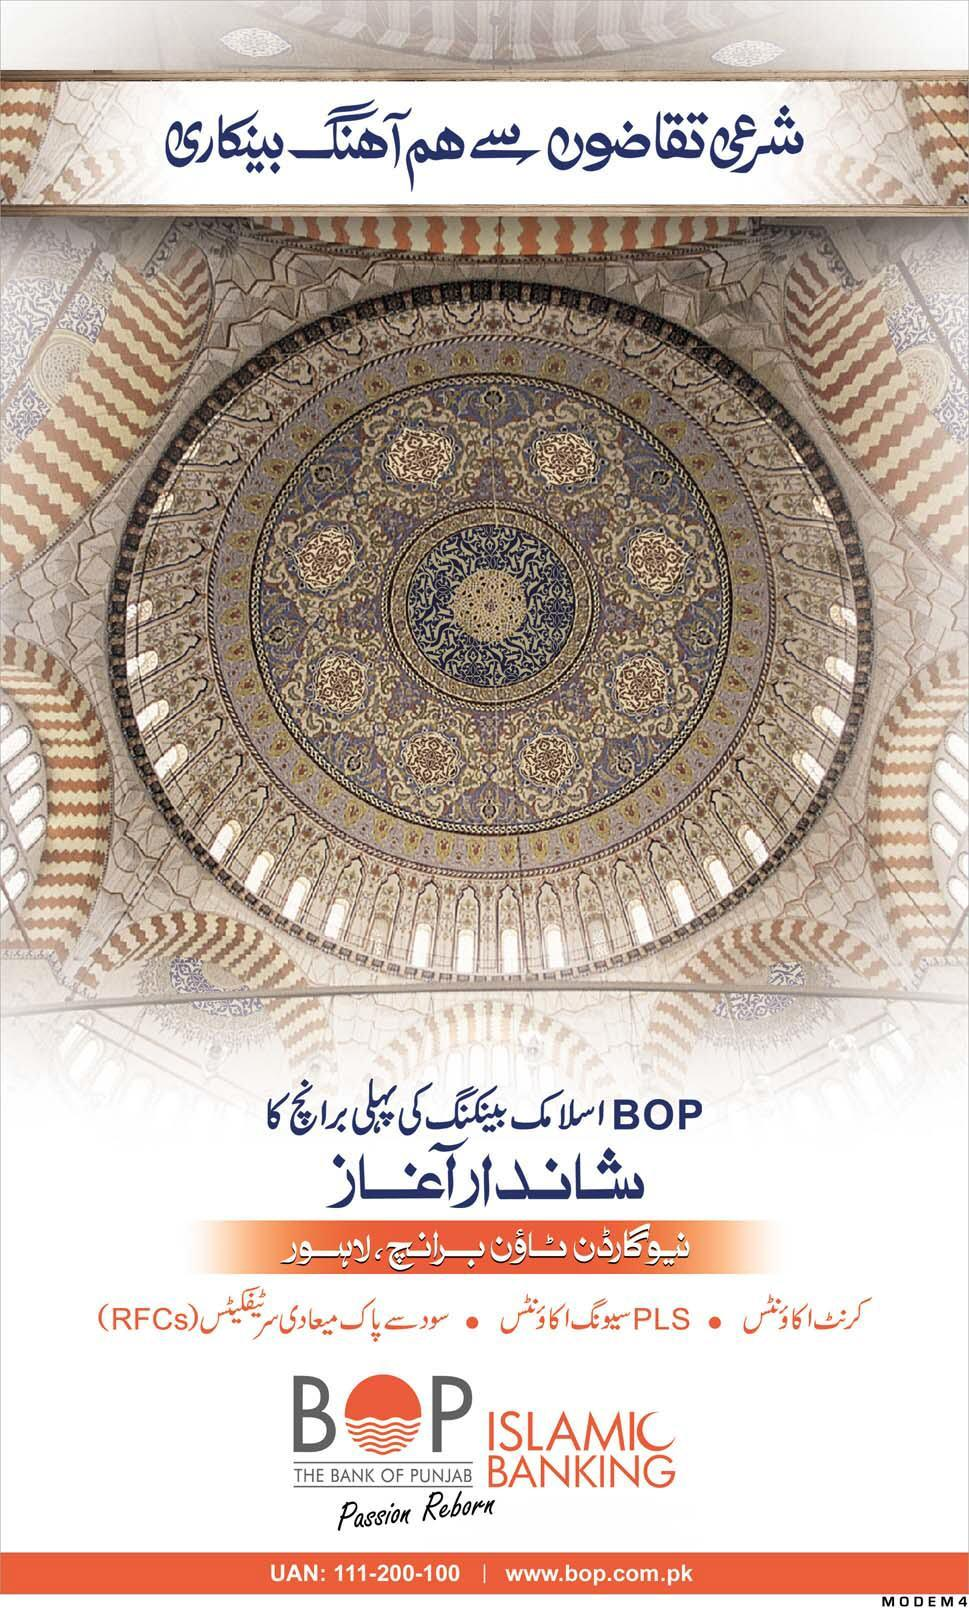 Bank of Punjab BOP Starts Islamic Banking in Pakistan Job in Allied Bank Job, ABL Careers, Tellers Position 2013